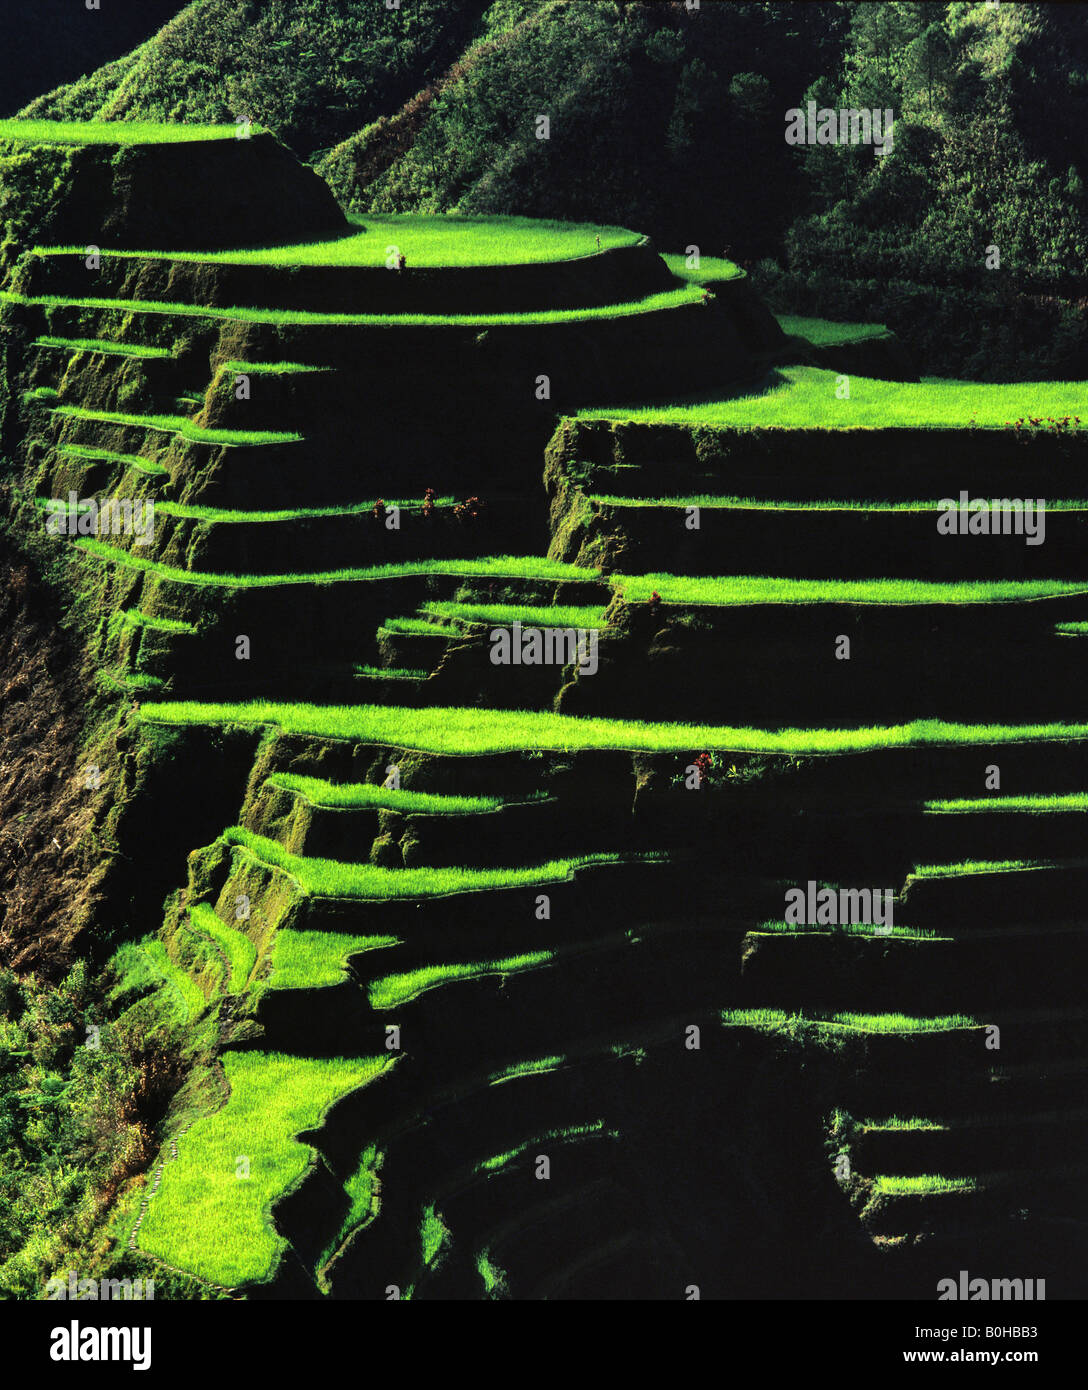 Rice terraces, Banaue, Ifugao Province, Luzon, Philippines - Stock Image